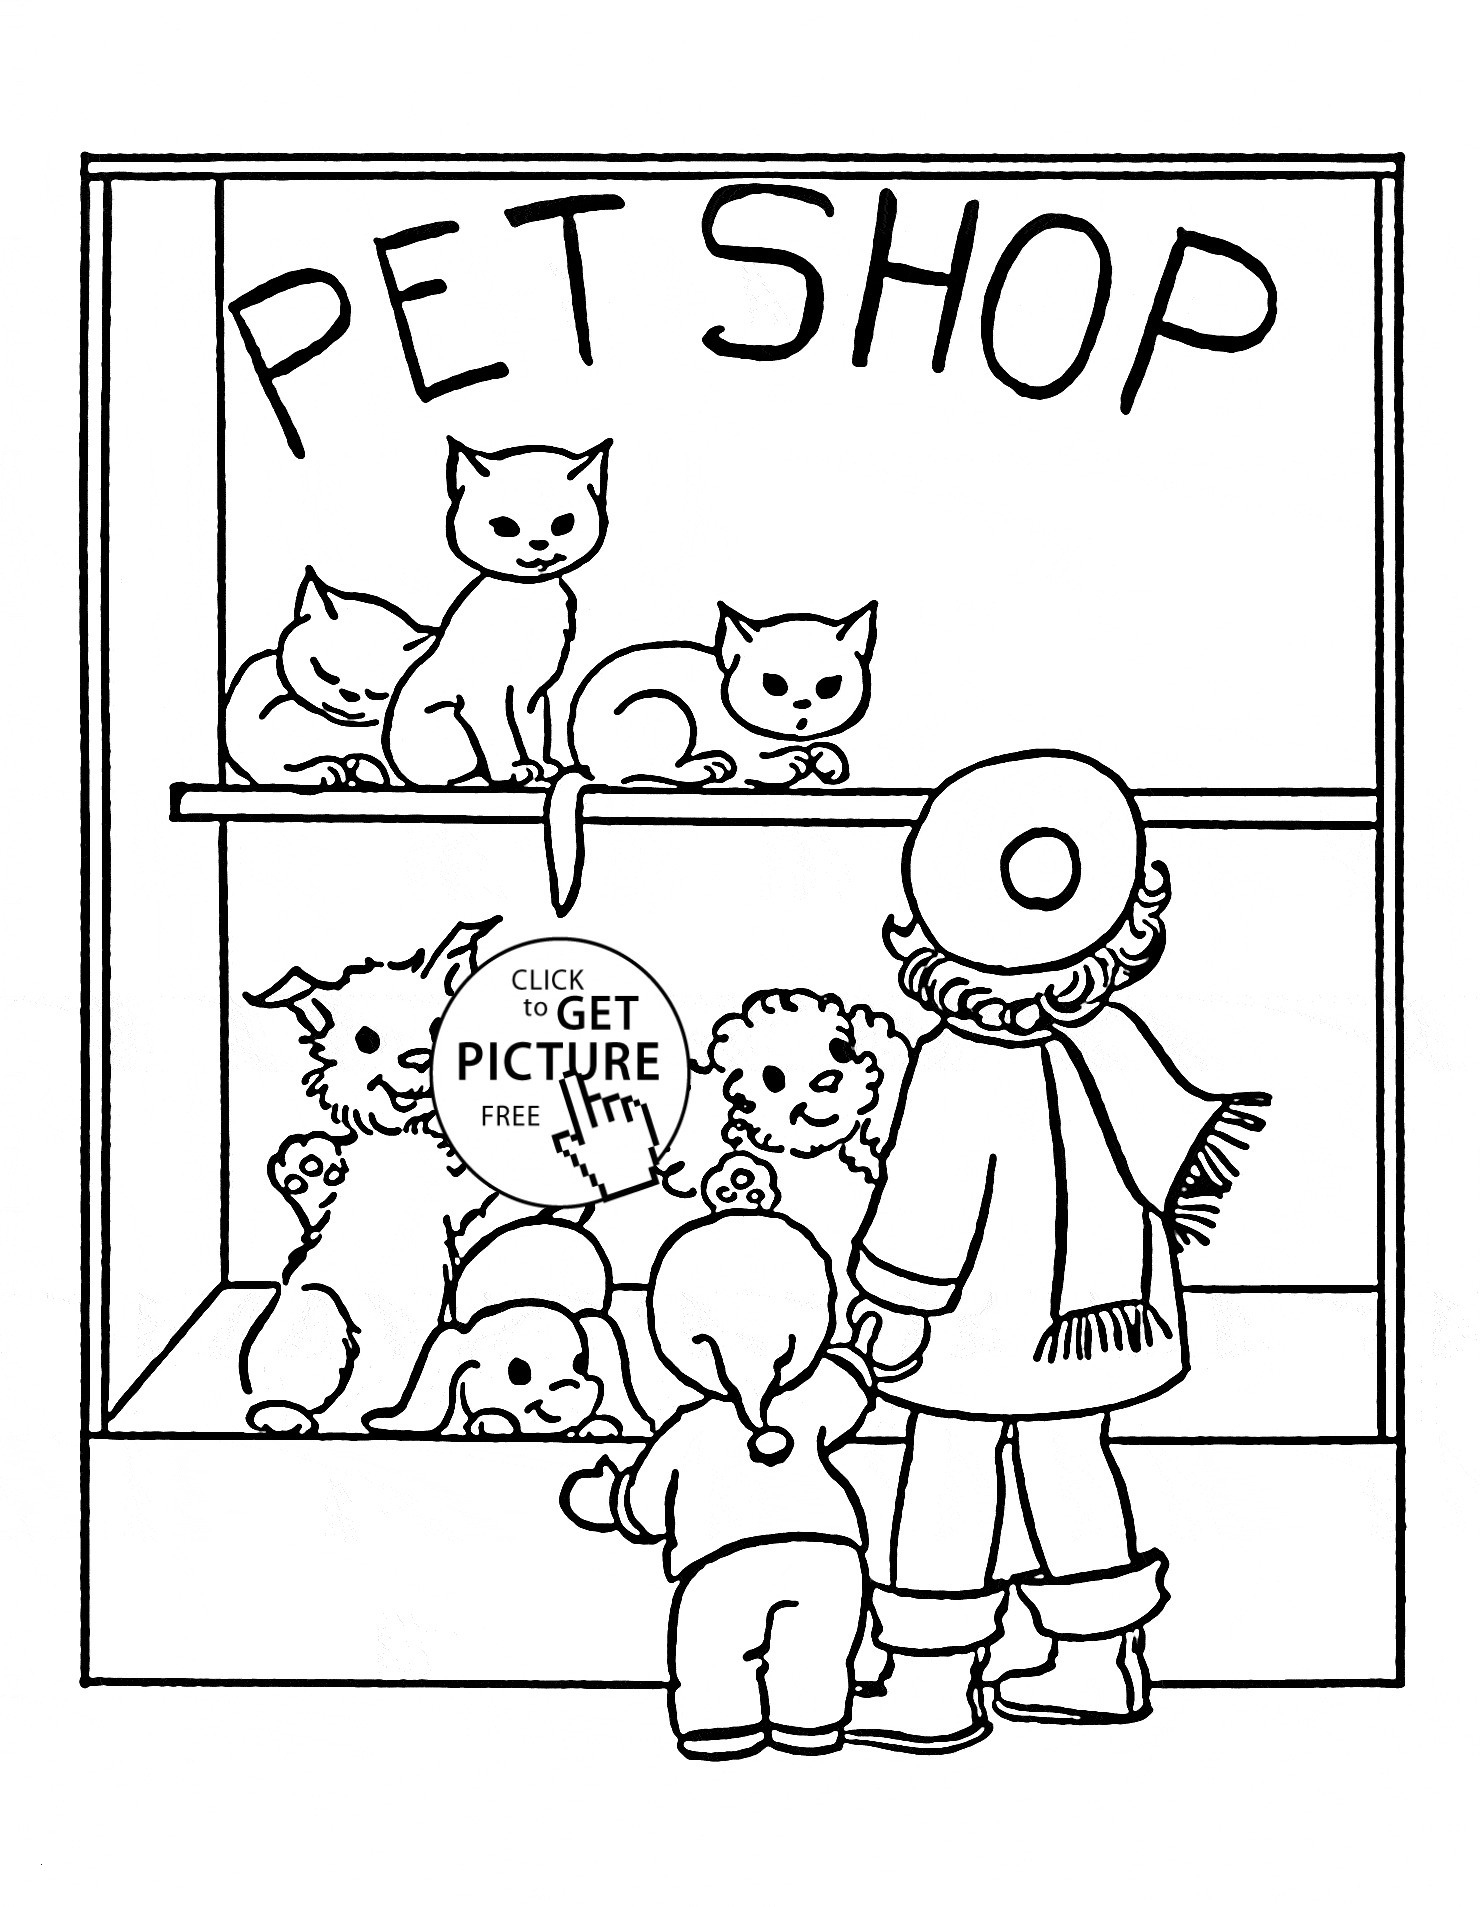 safety signs coloring pages Collection-Traffic Sign Coloring Pages 30 New Stop Light Coloring Page Cloud9vegas 13-c